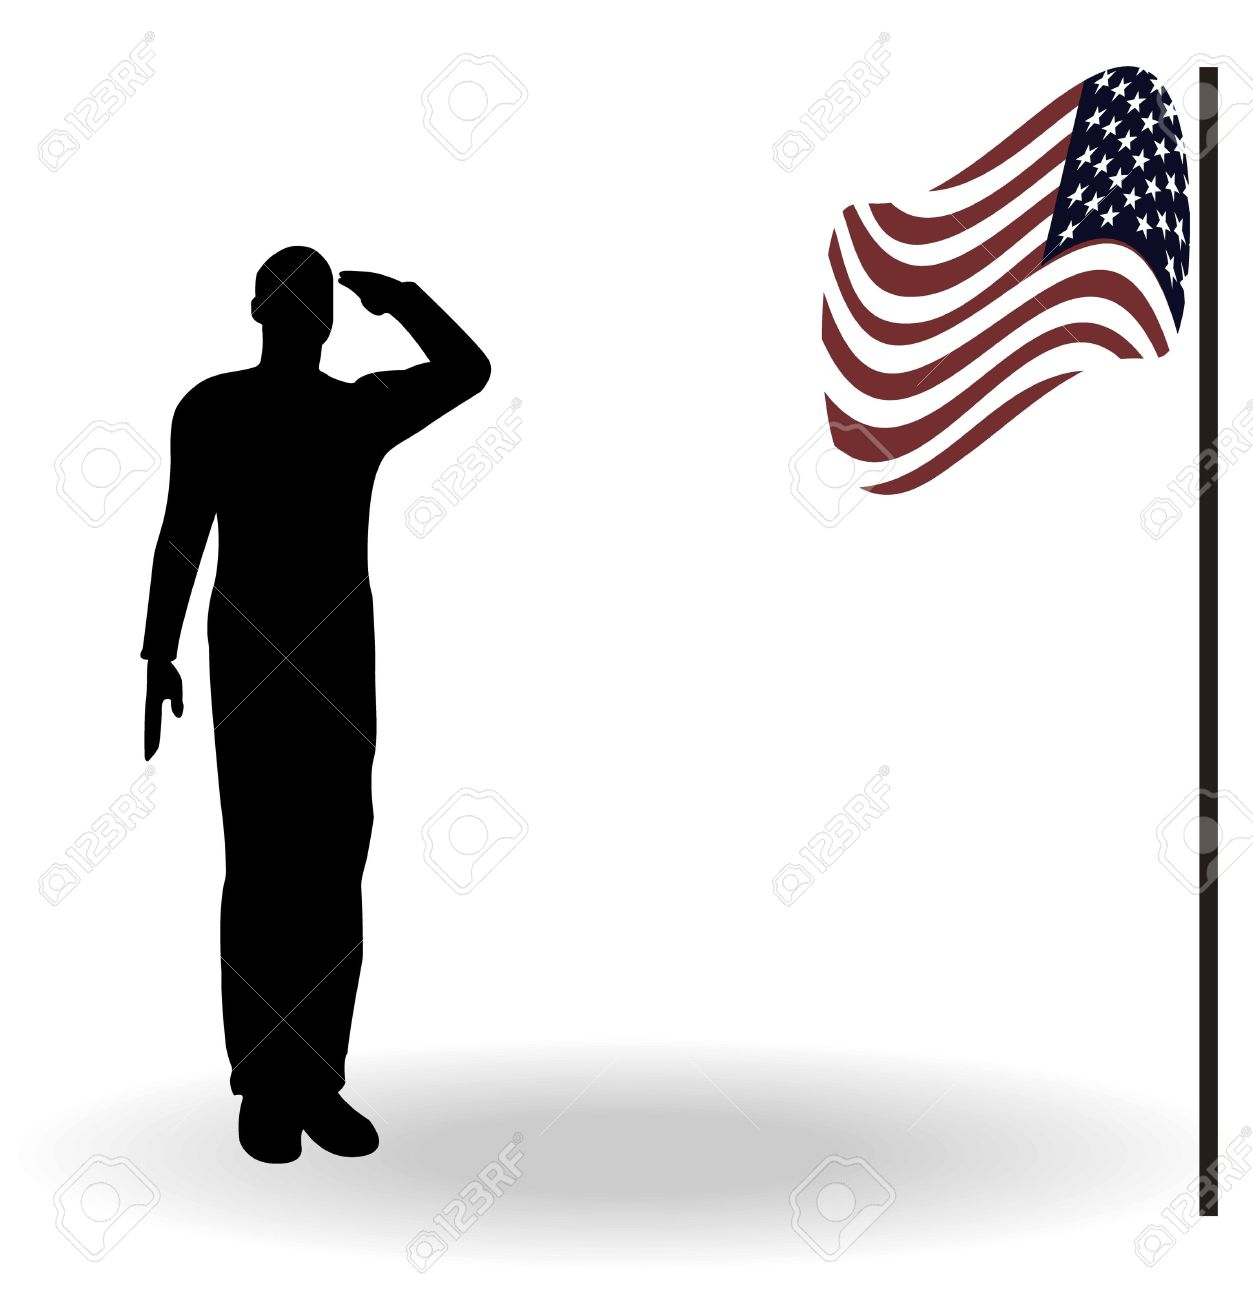 Soldier saluting flag clipart.